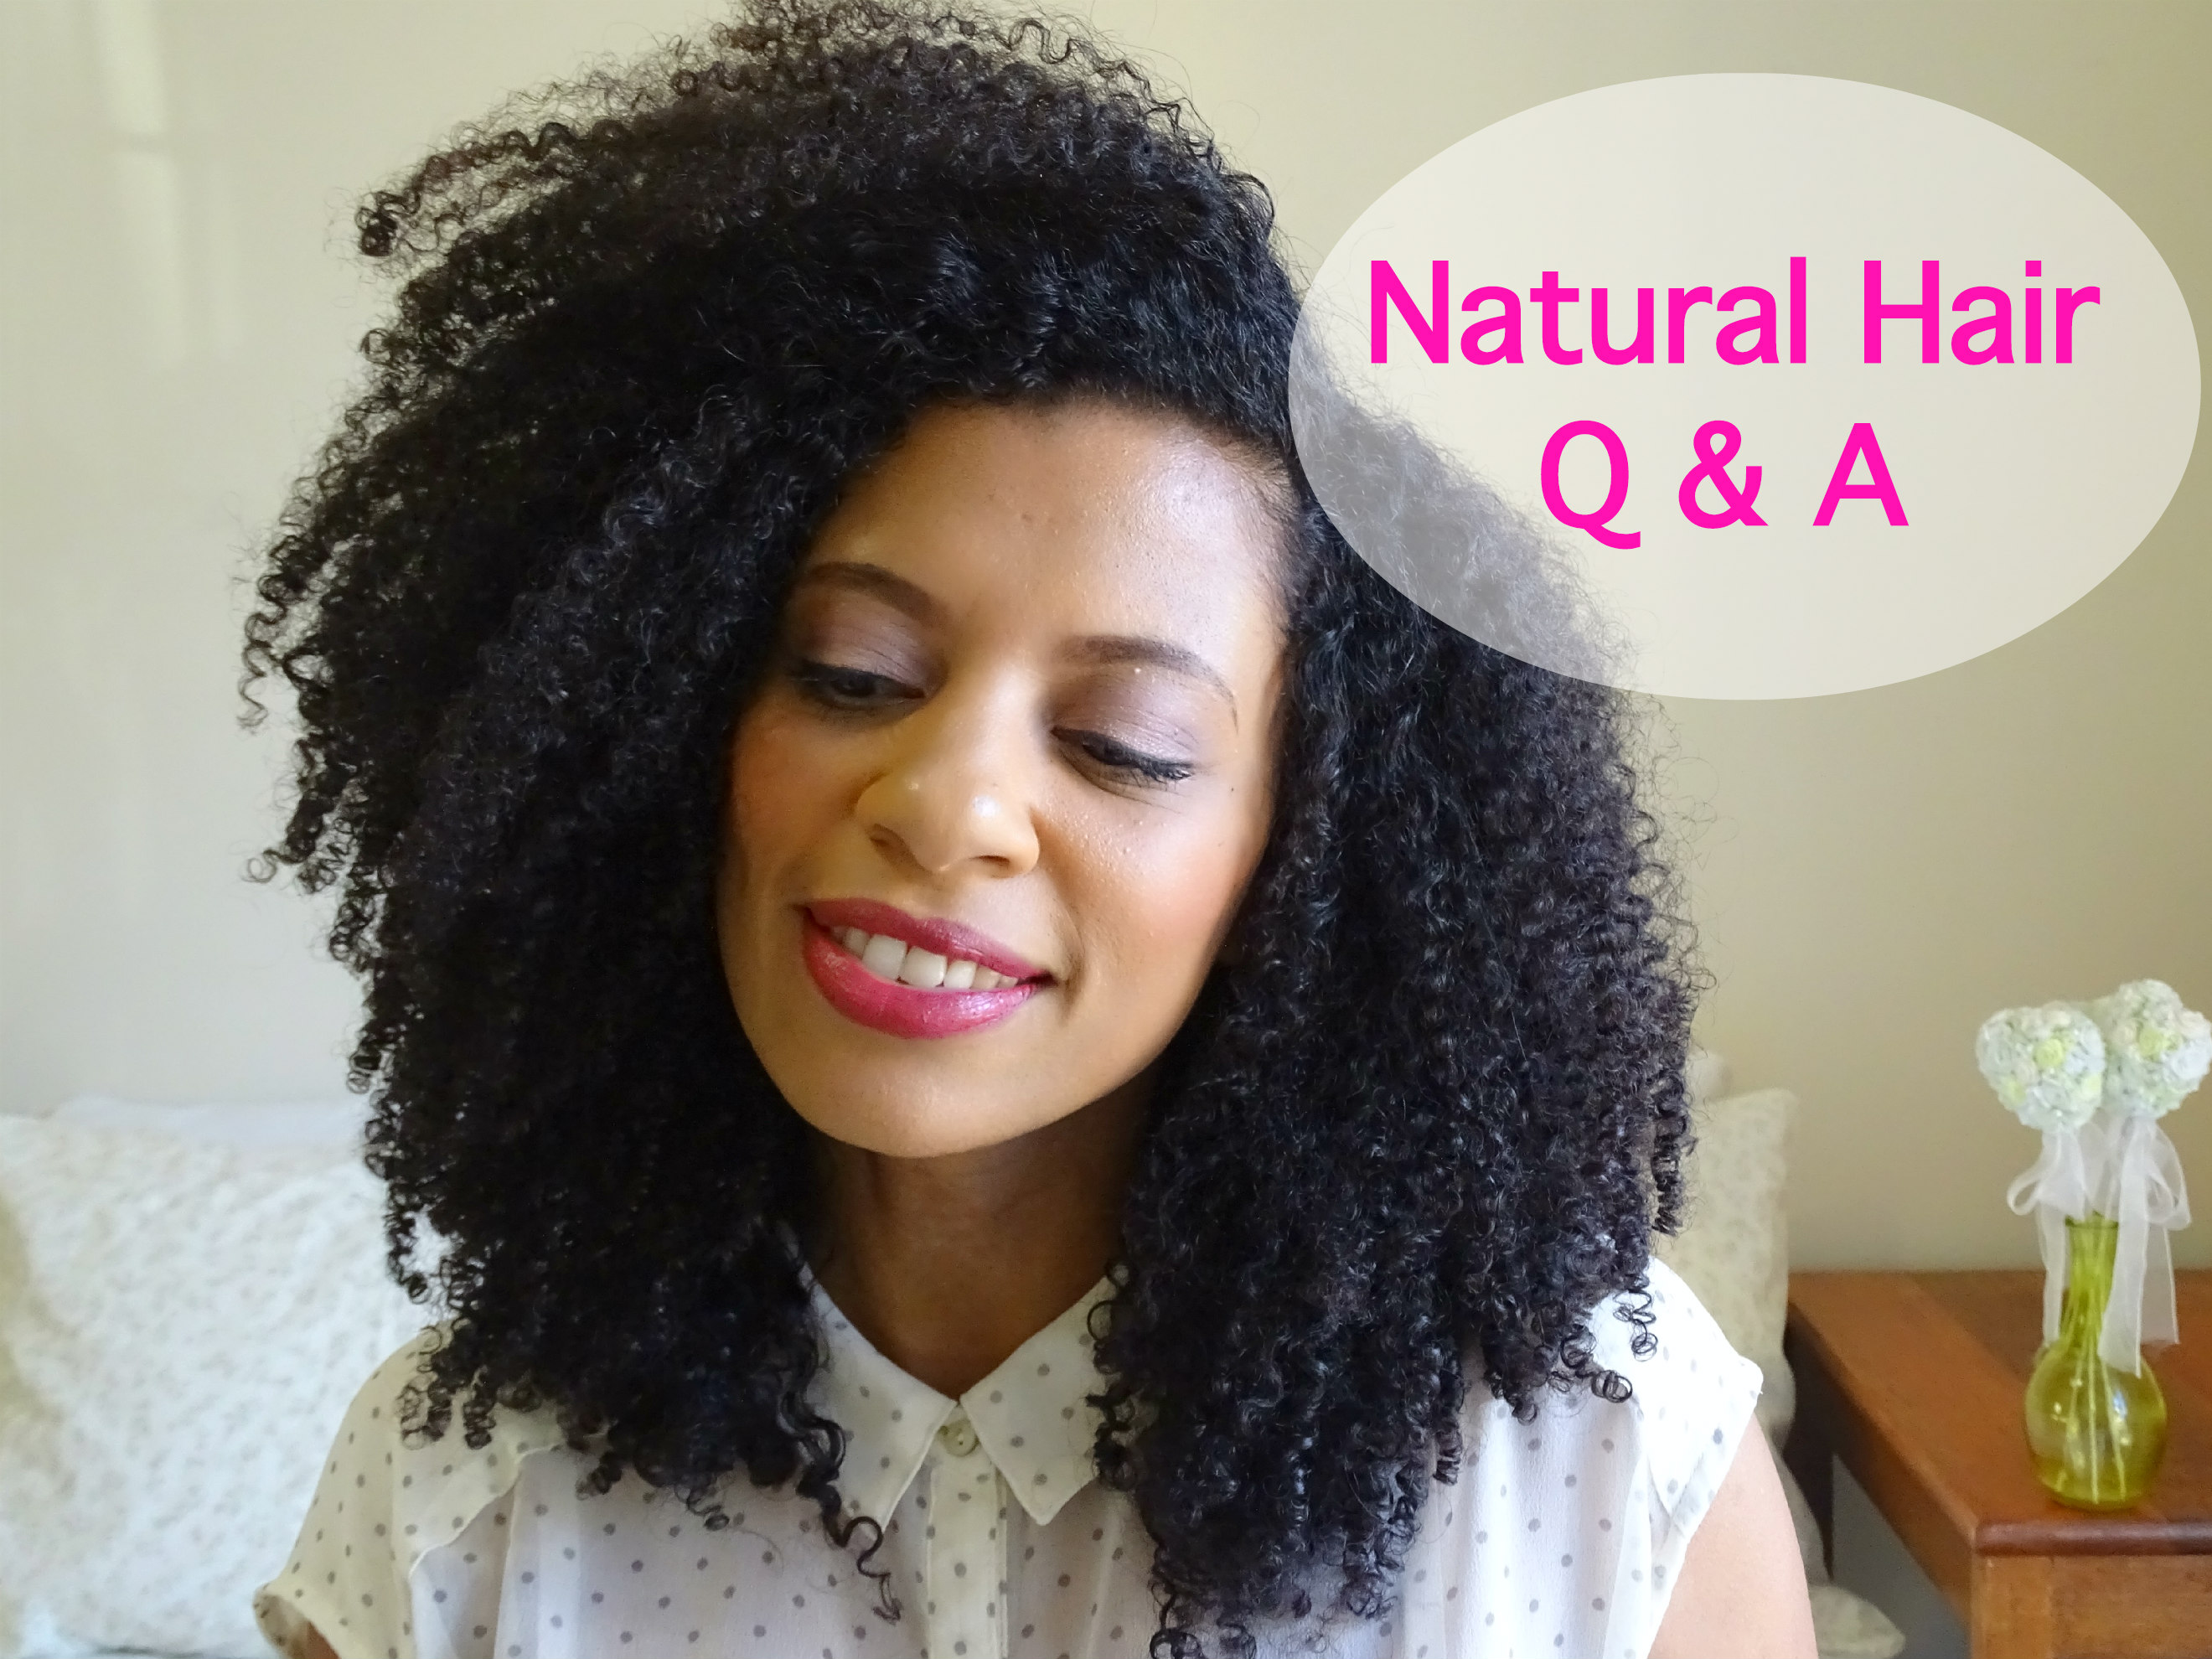 eleanorjadore - Natural Hair Q & A